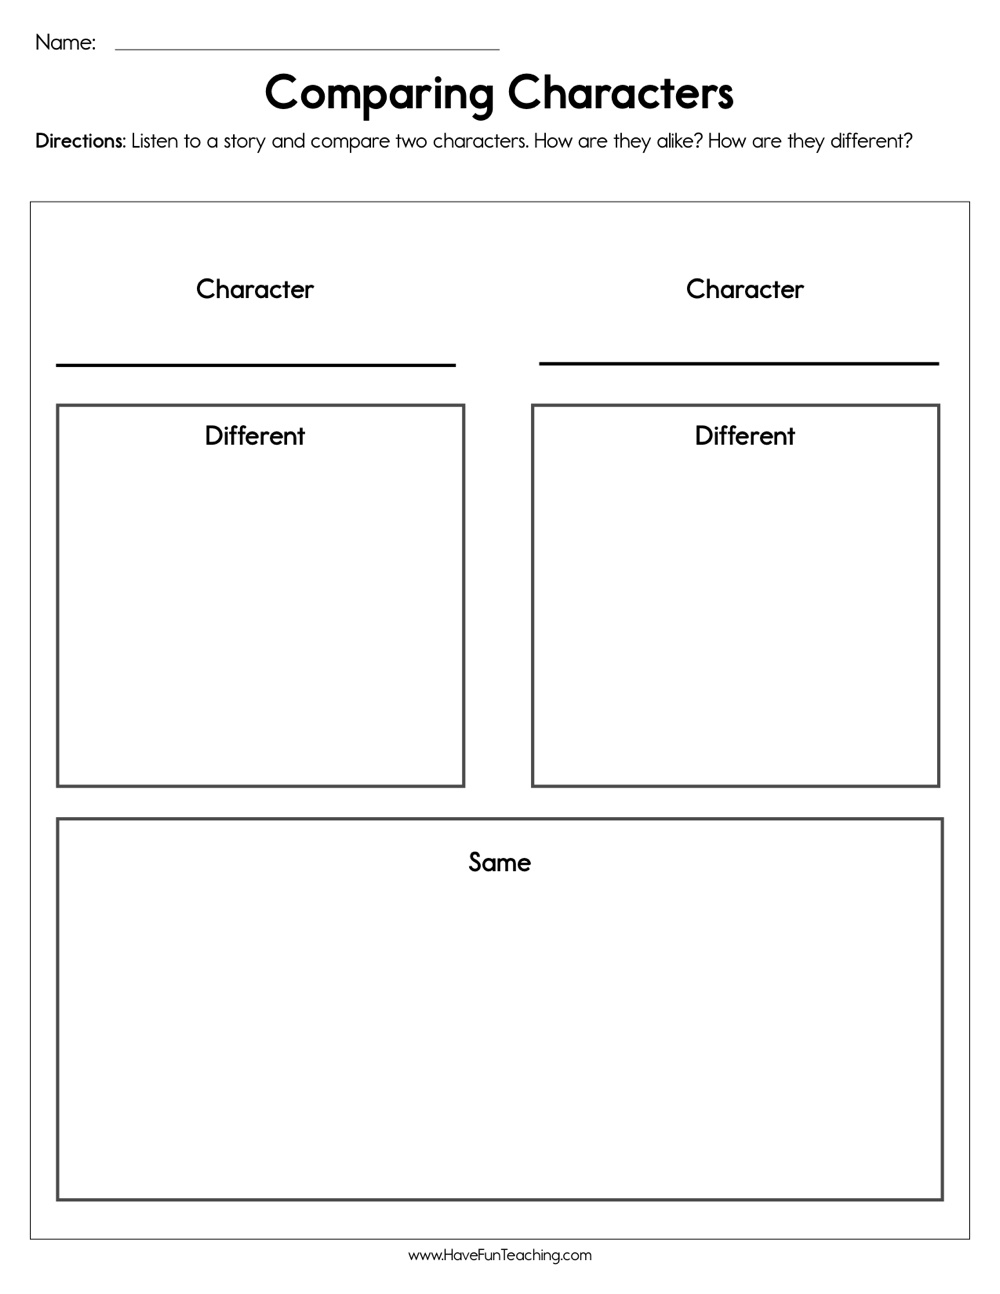 medium resolution of Comparing Characters Worksheet • Have Fun Teaching